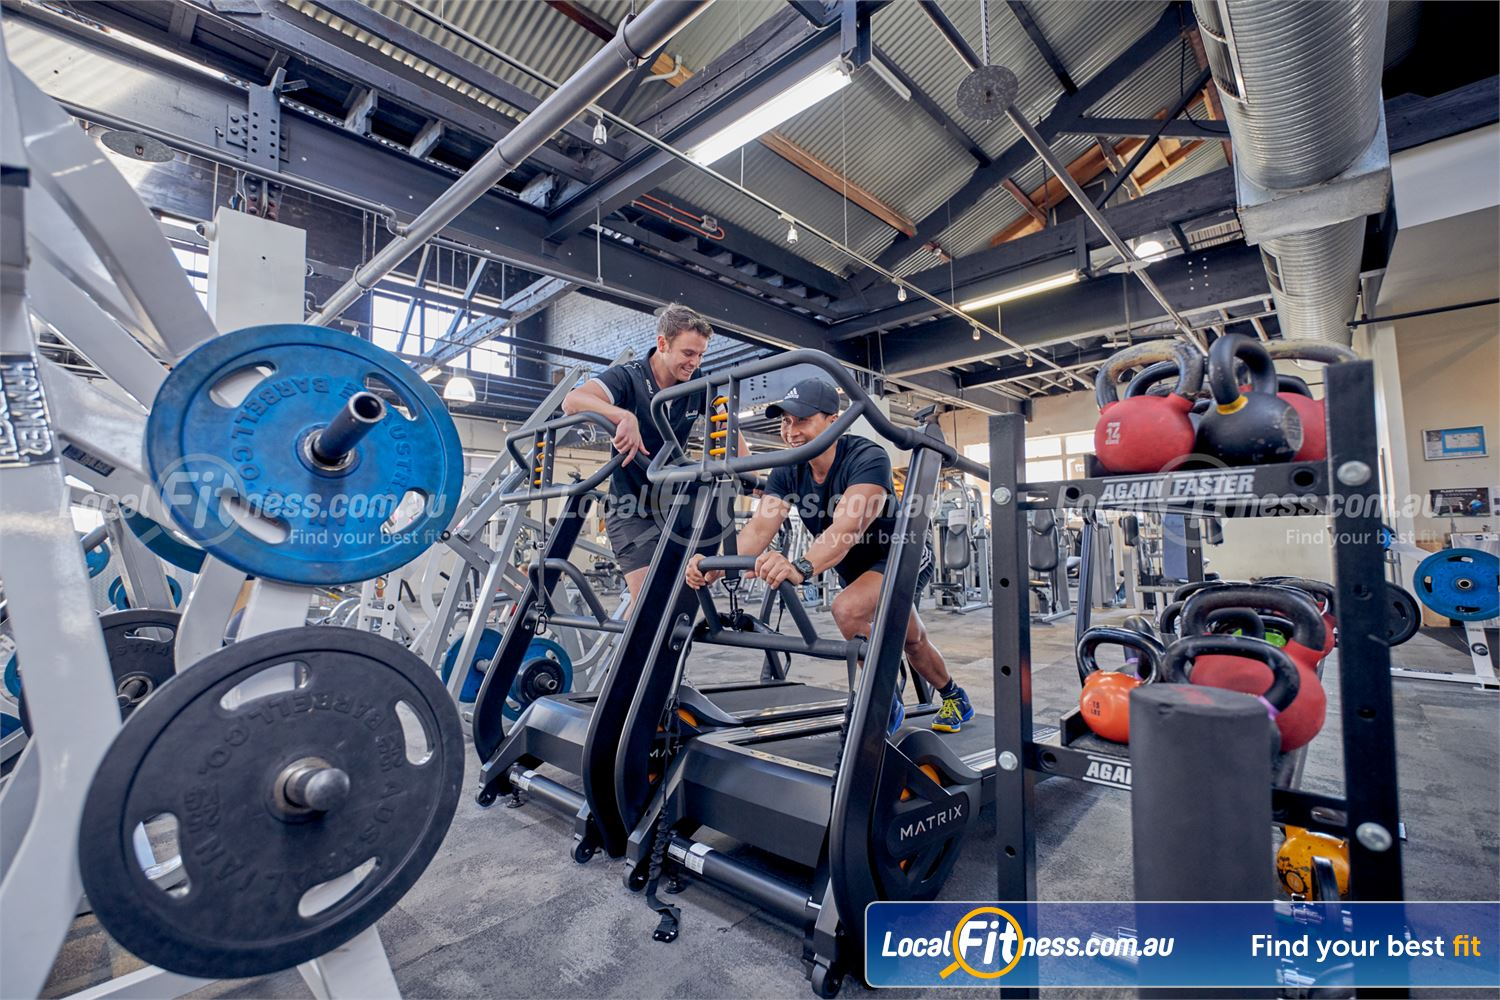 Goodlife Health Clubs Near St Kilda Get a functional cardio workout on the MATRIX S-Drive Performance Trainer.